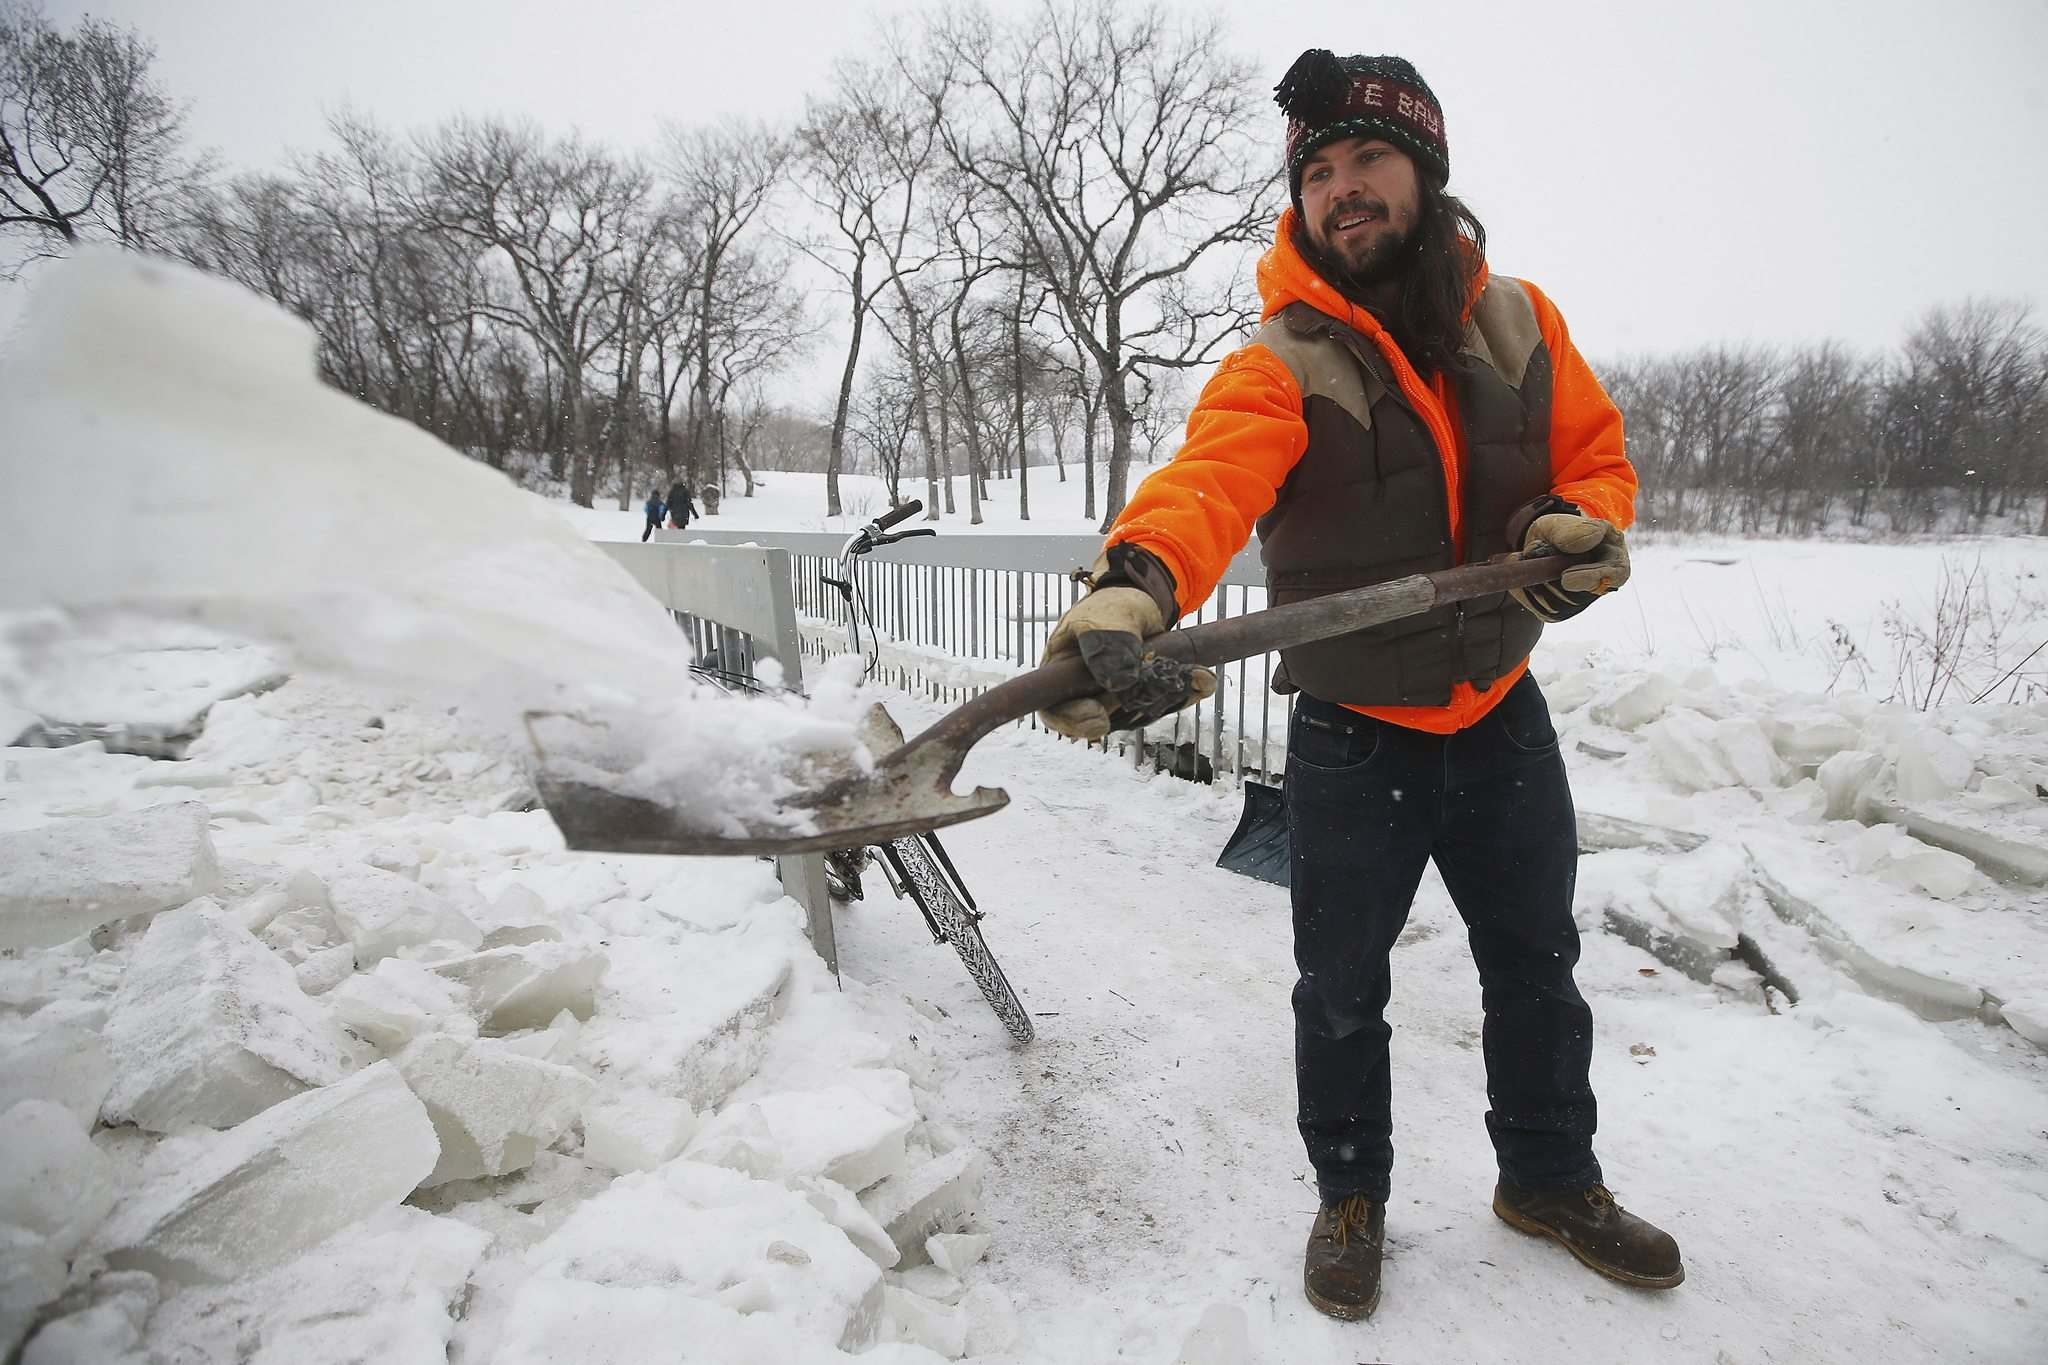 JOHN WOODS / WINNIPEG FREE PRESS</p><p>Brad Hignell and another resident shovelled the ice from a pedestrian bridge that crosses Omand's Creek after the City of Winnipeg closed it to pedestrians.</p></p>